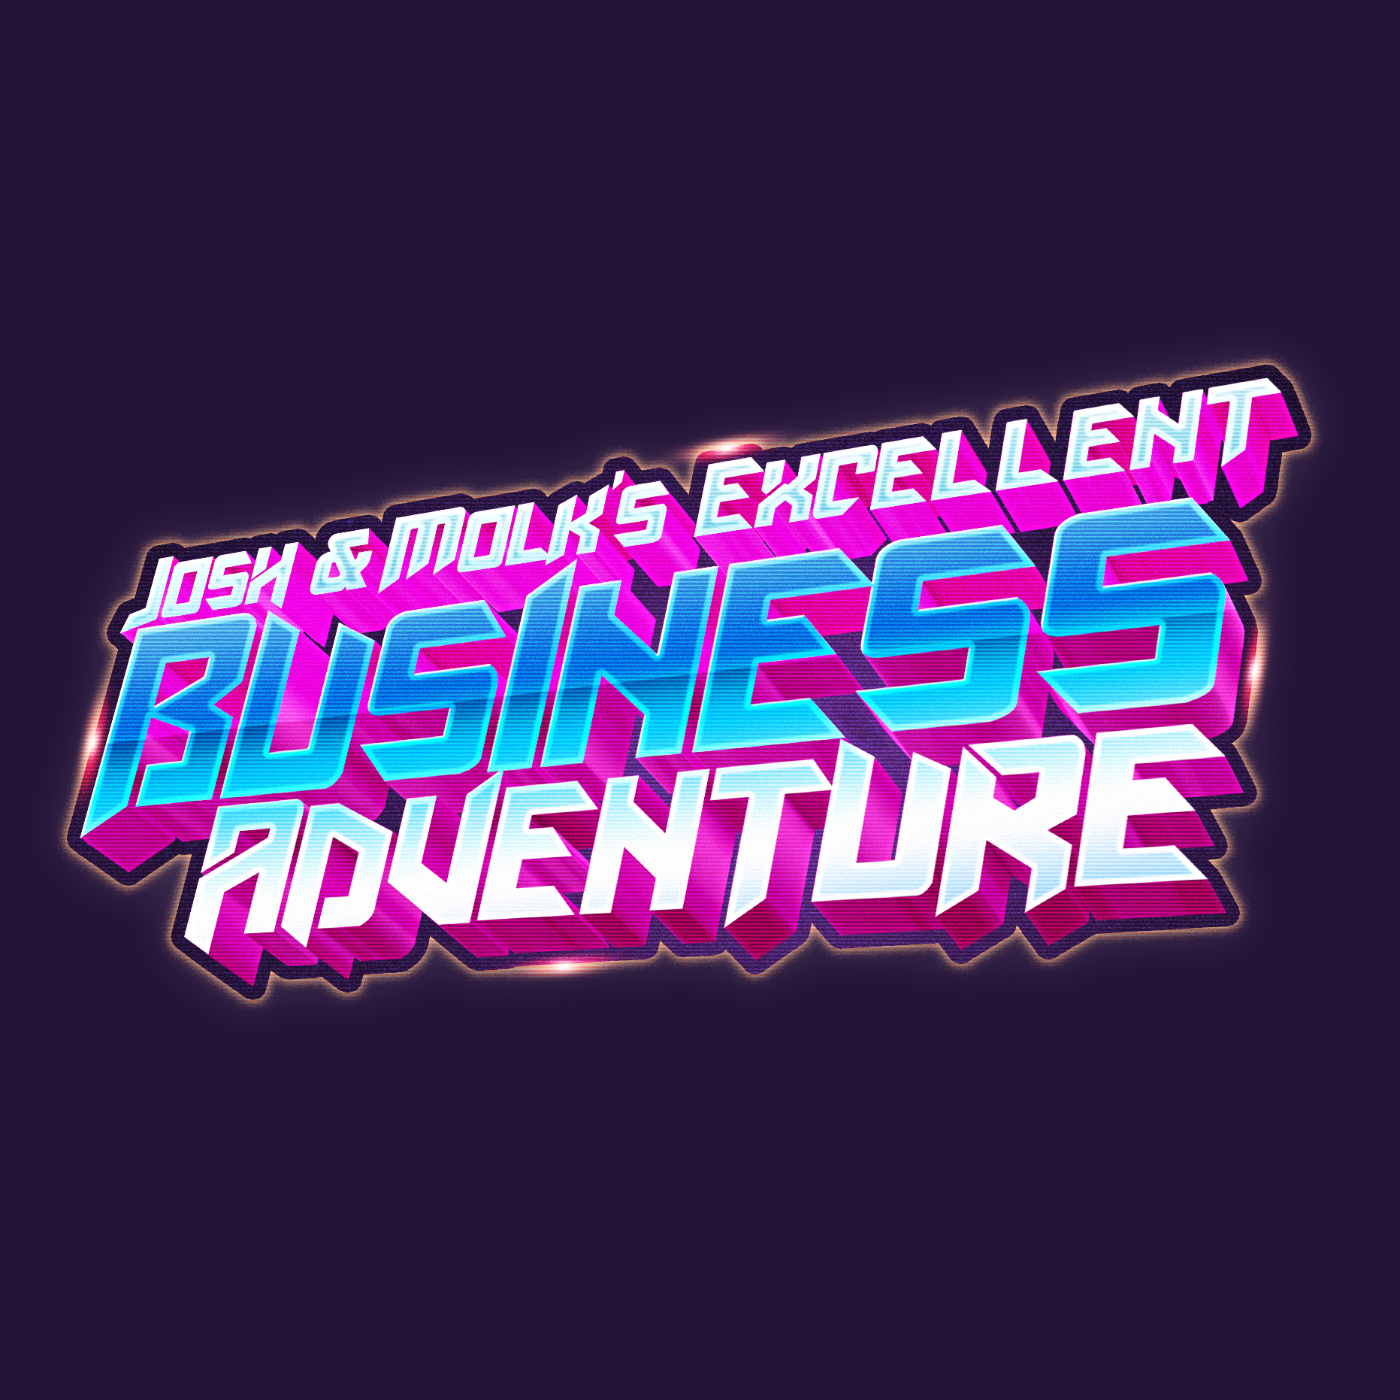 Josh & Molk's Excellent Business Adventure